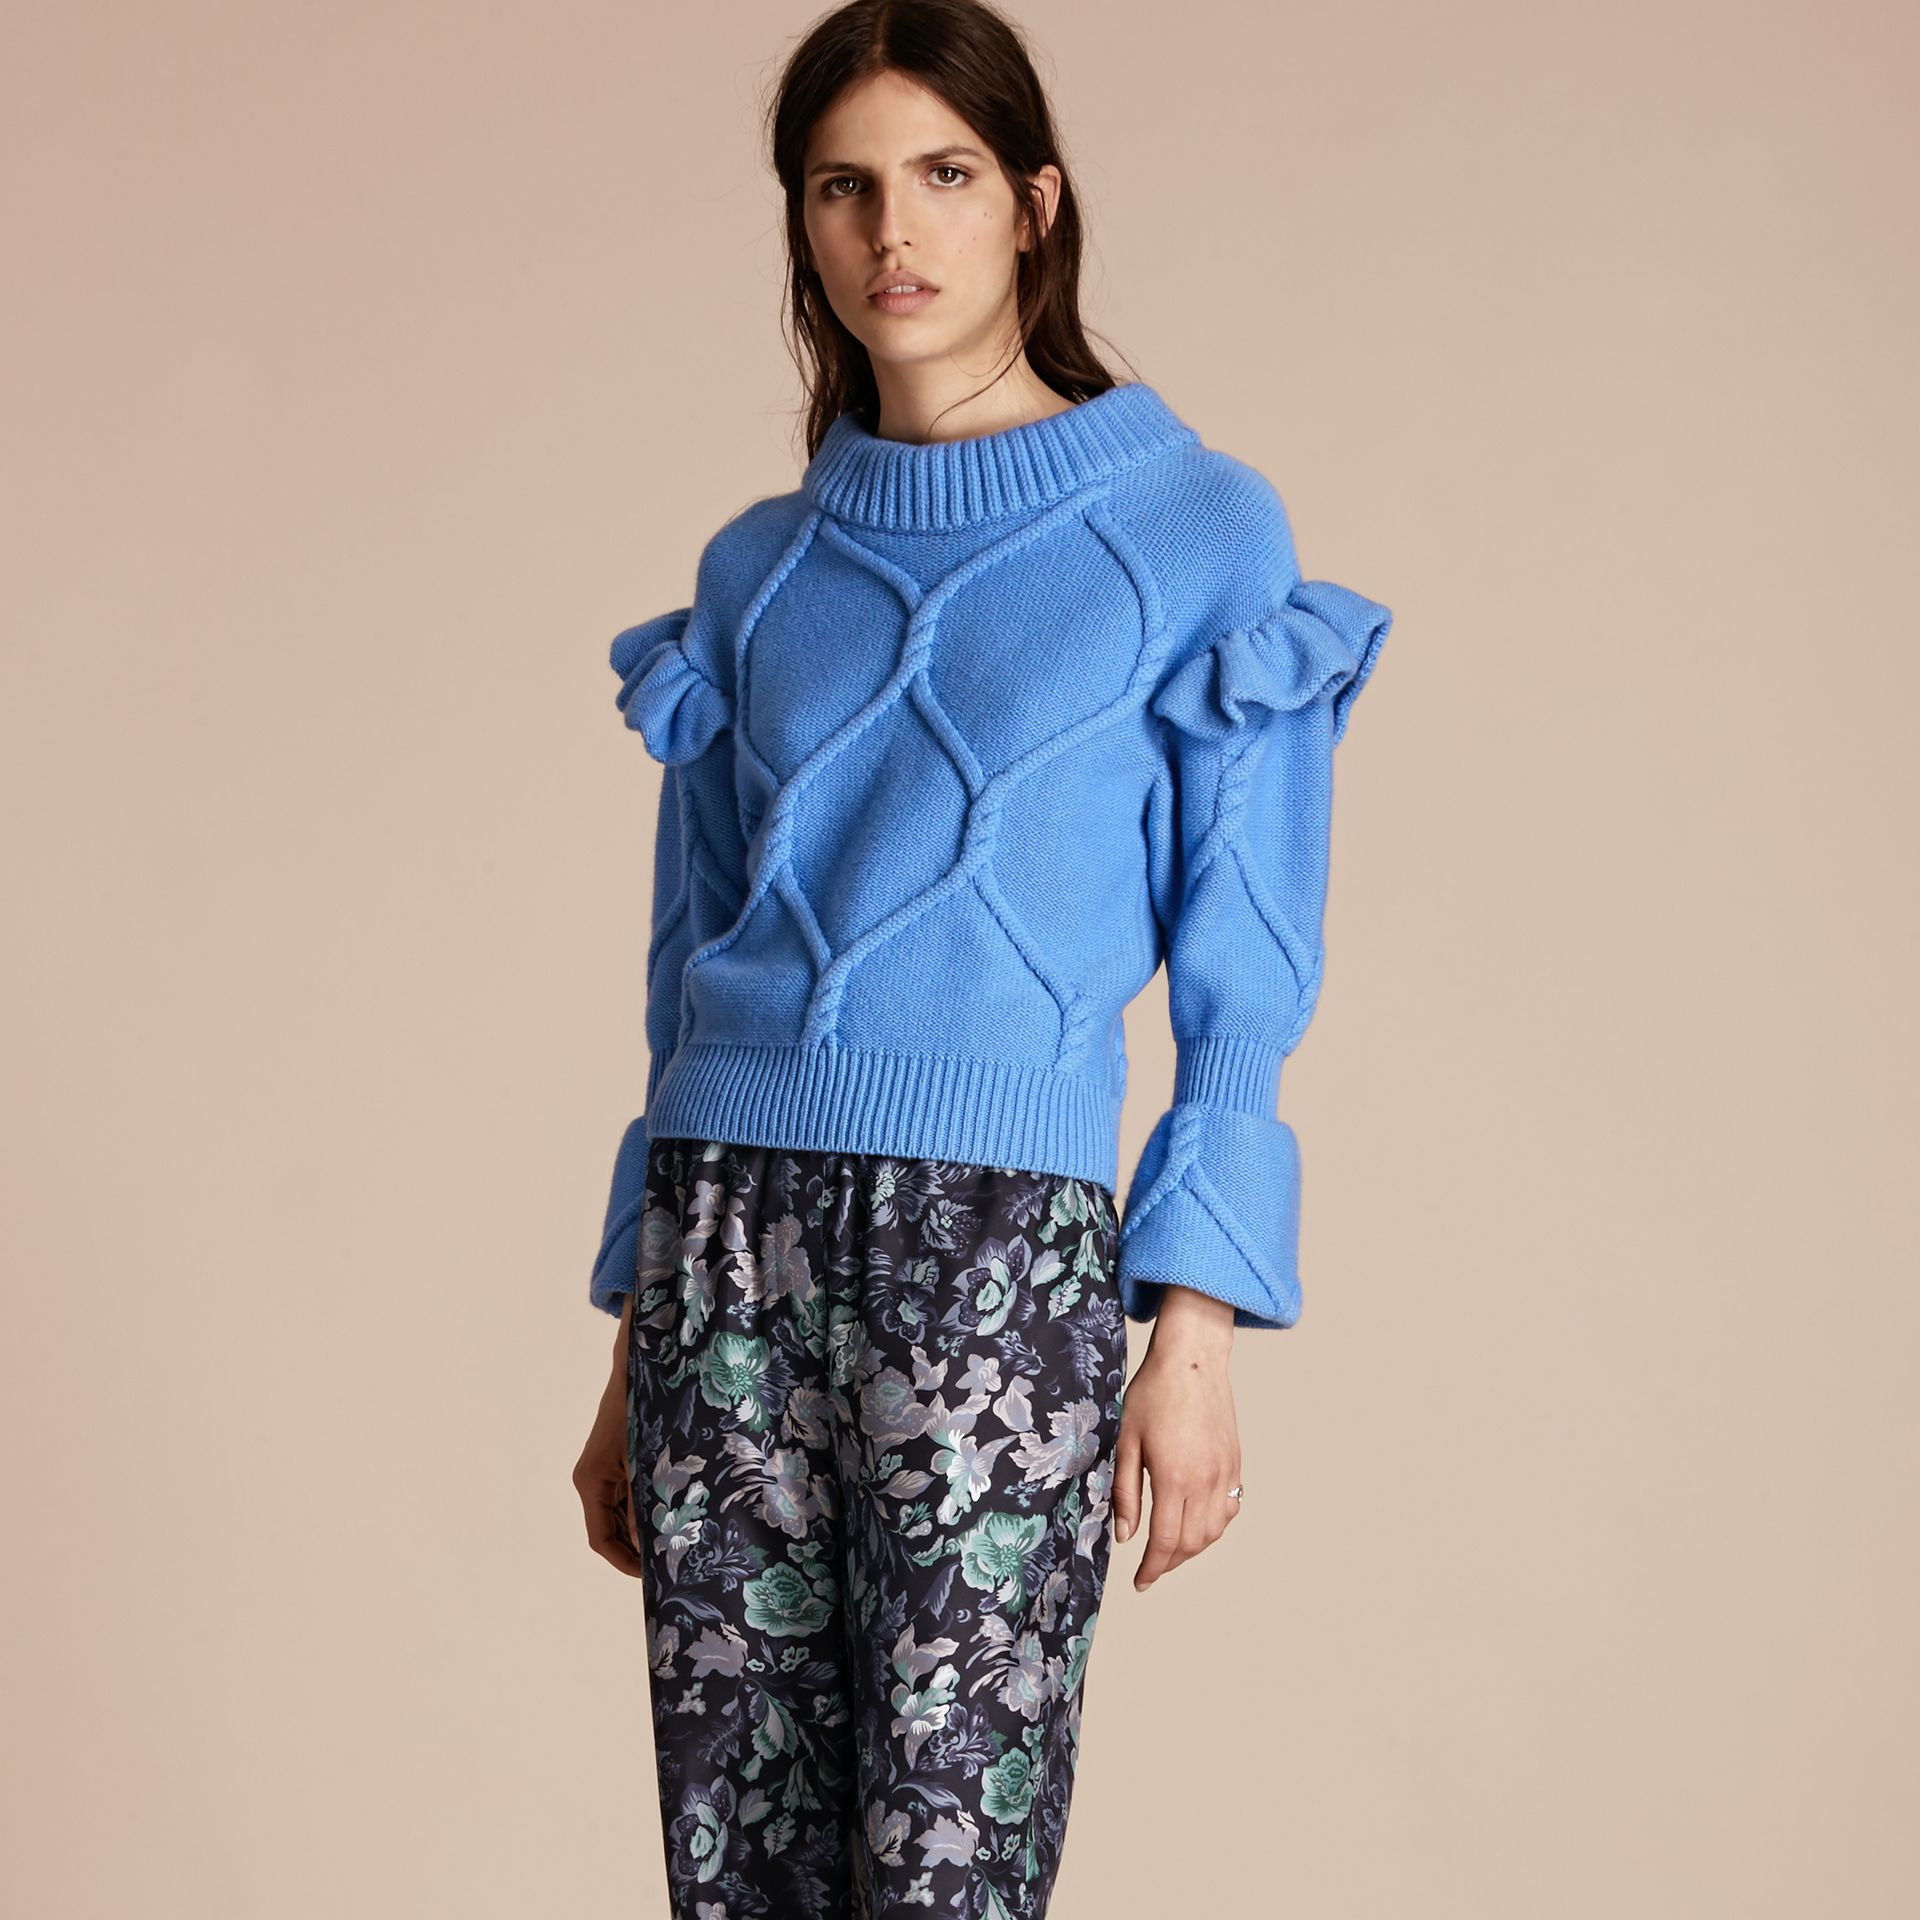 Hydrangia blue Ruffle-sleeved Cable Knit Wool Cashmere Sweater - gallery image 6